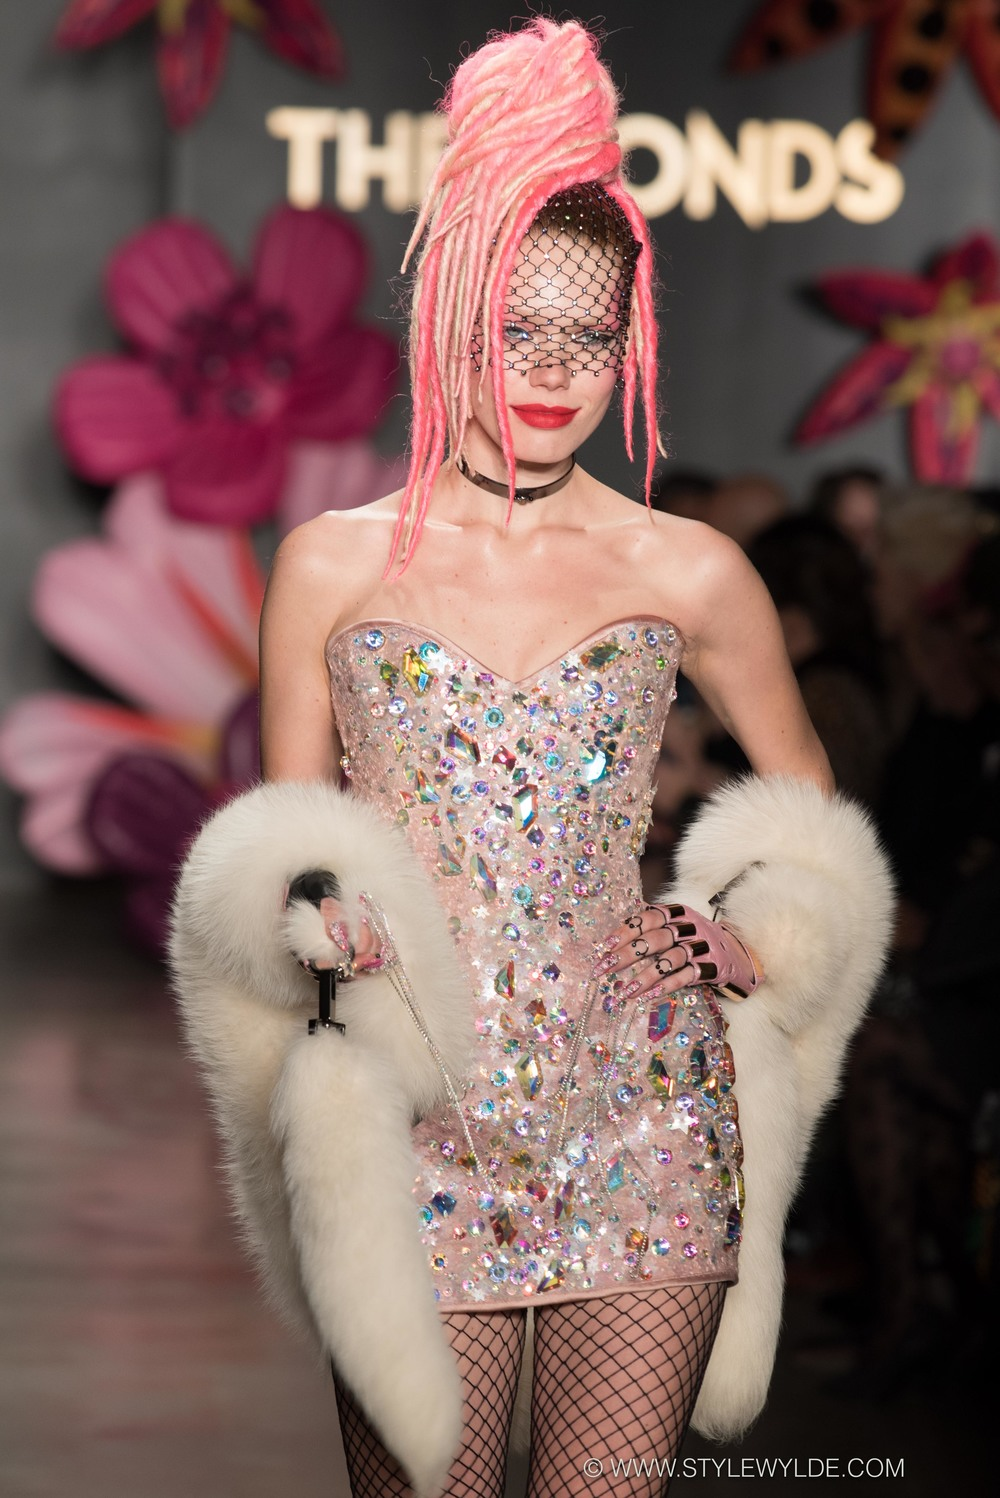 StyleWylde - The blonds- AW16-19.jpg